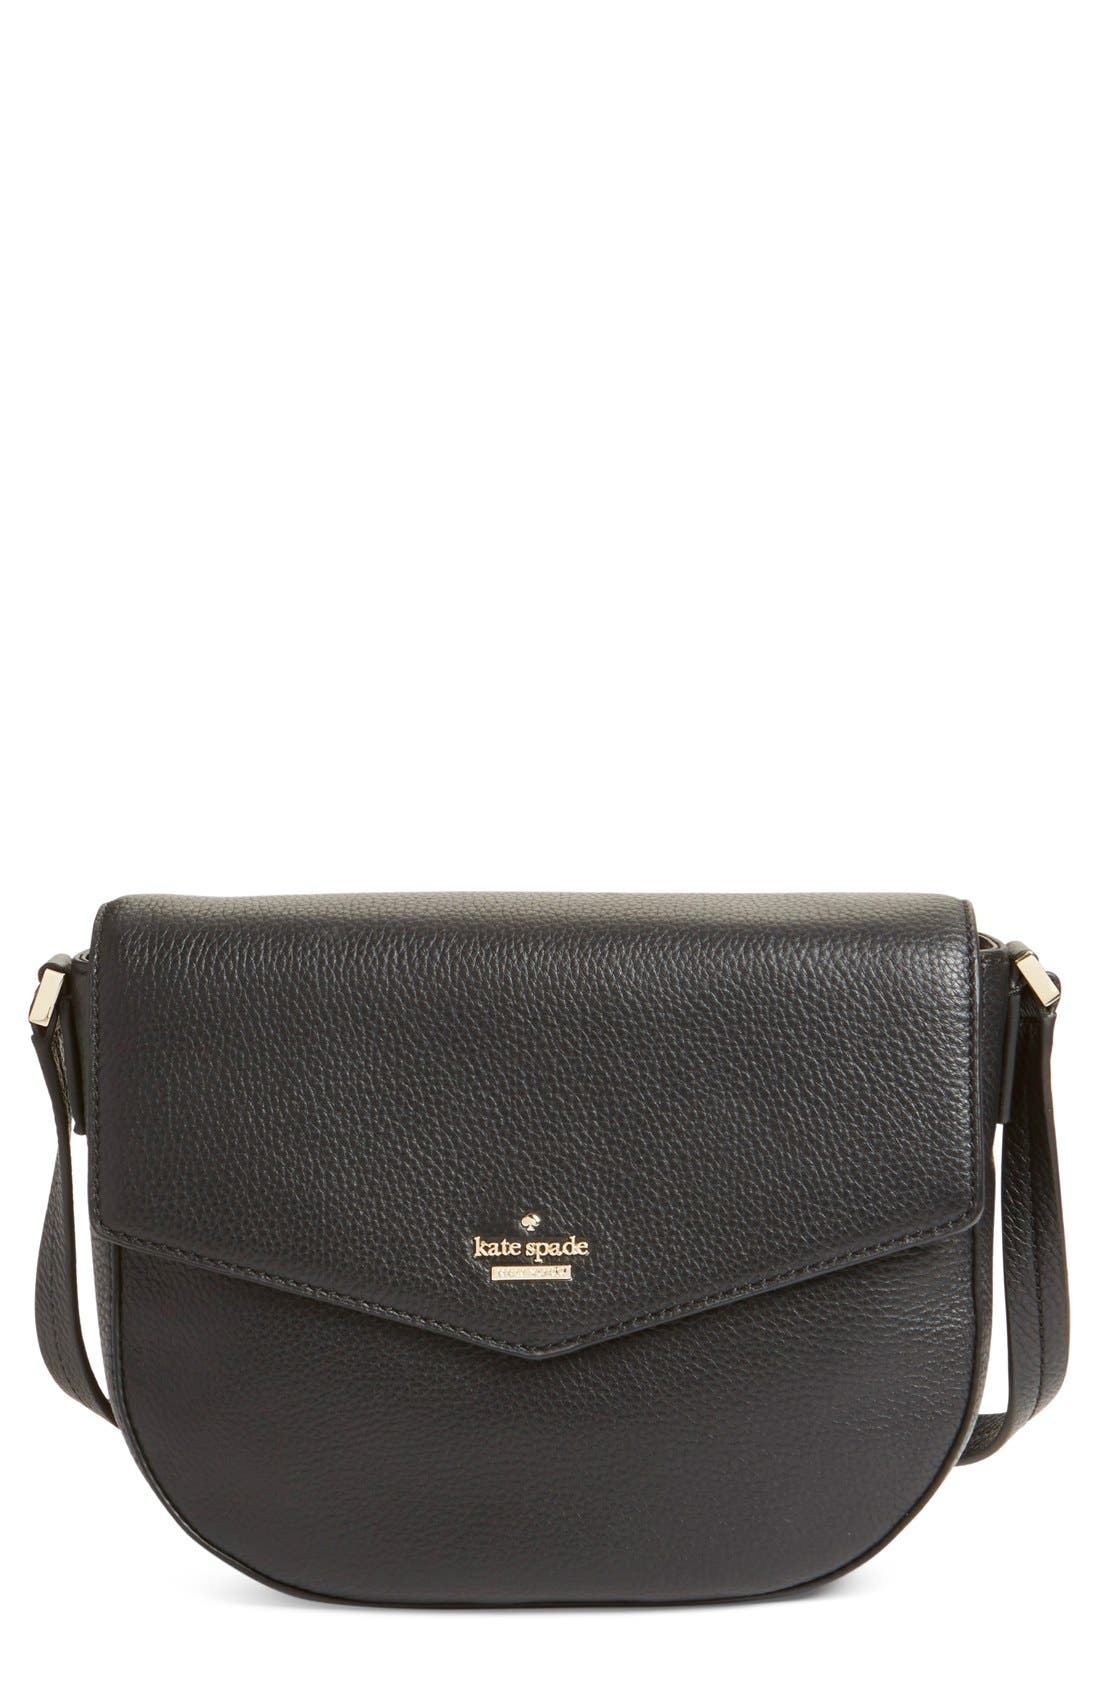 Main Image - kate spade new york 'spencer court - lavinia' leather crossbody bag